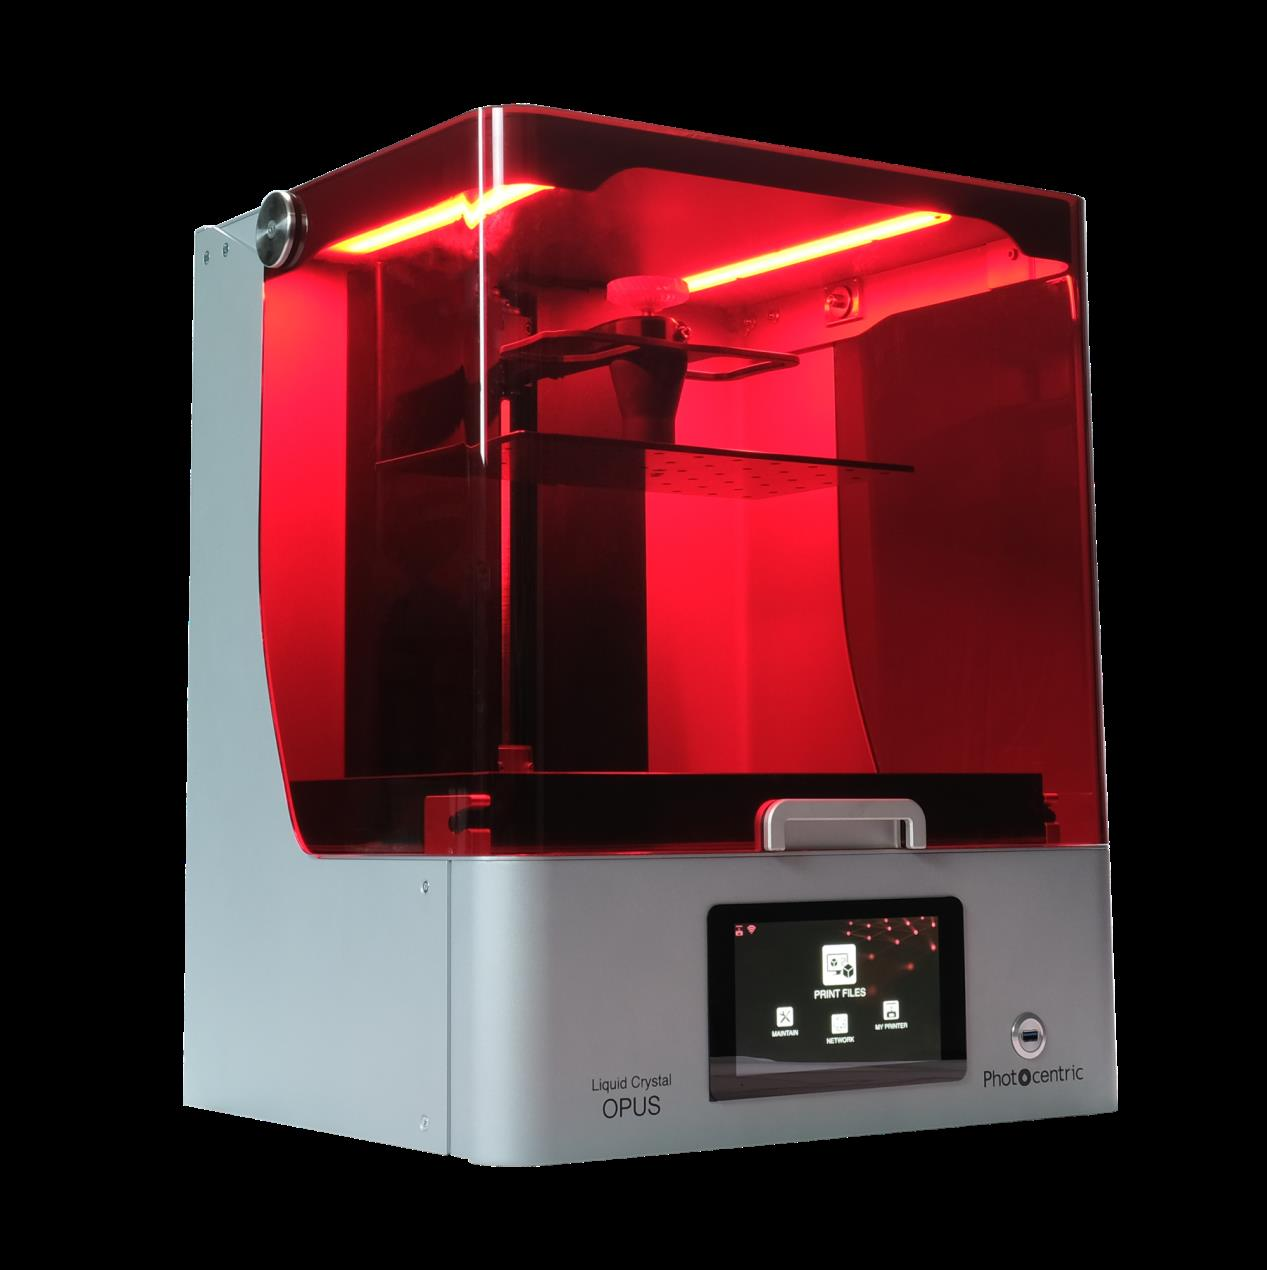 The LC Opus is Photocentric's quickest LCD 3D printer to date. Photo via Photocentric.